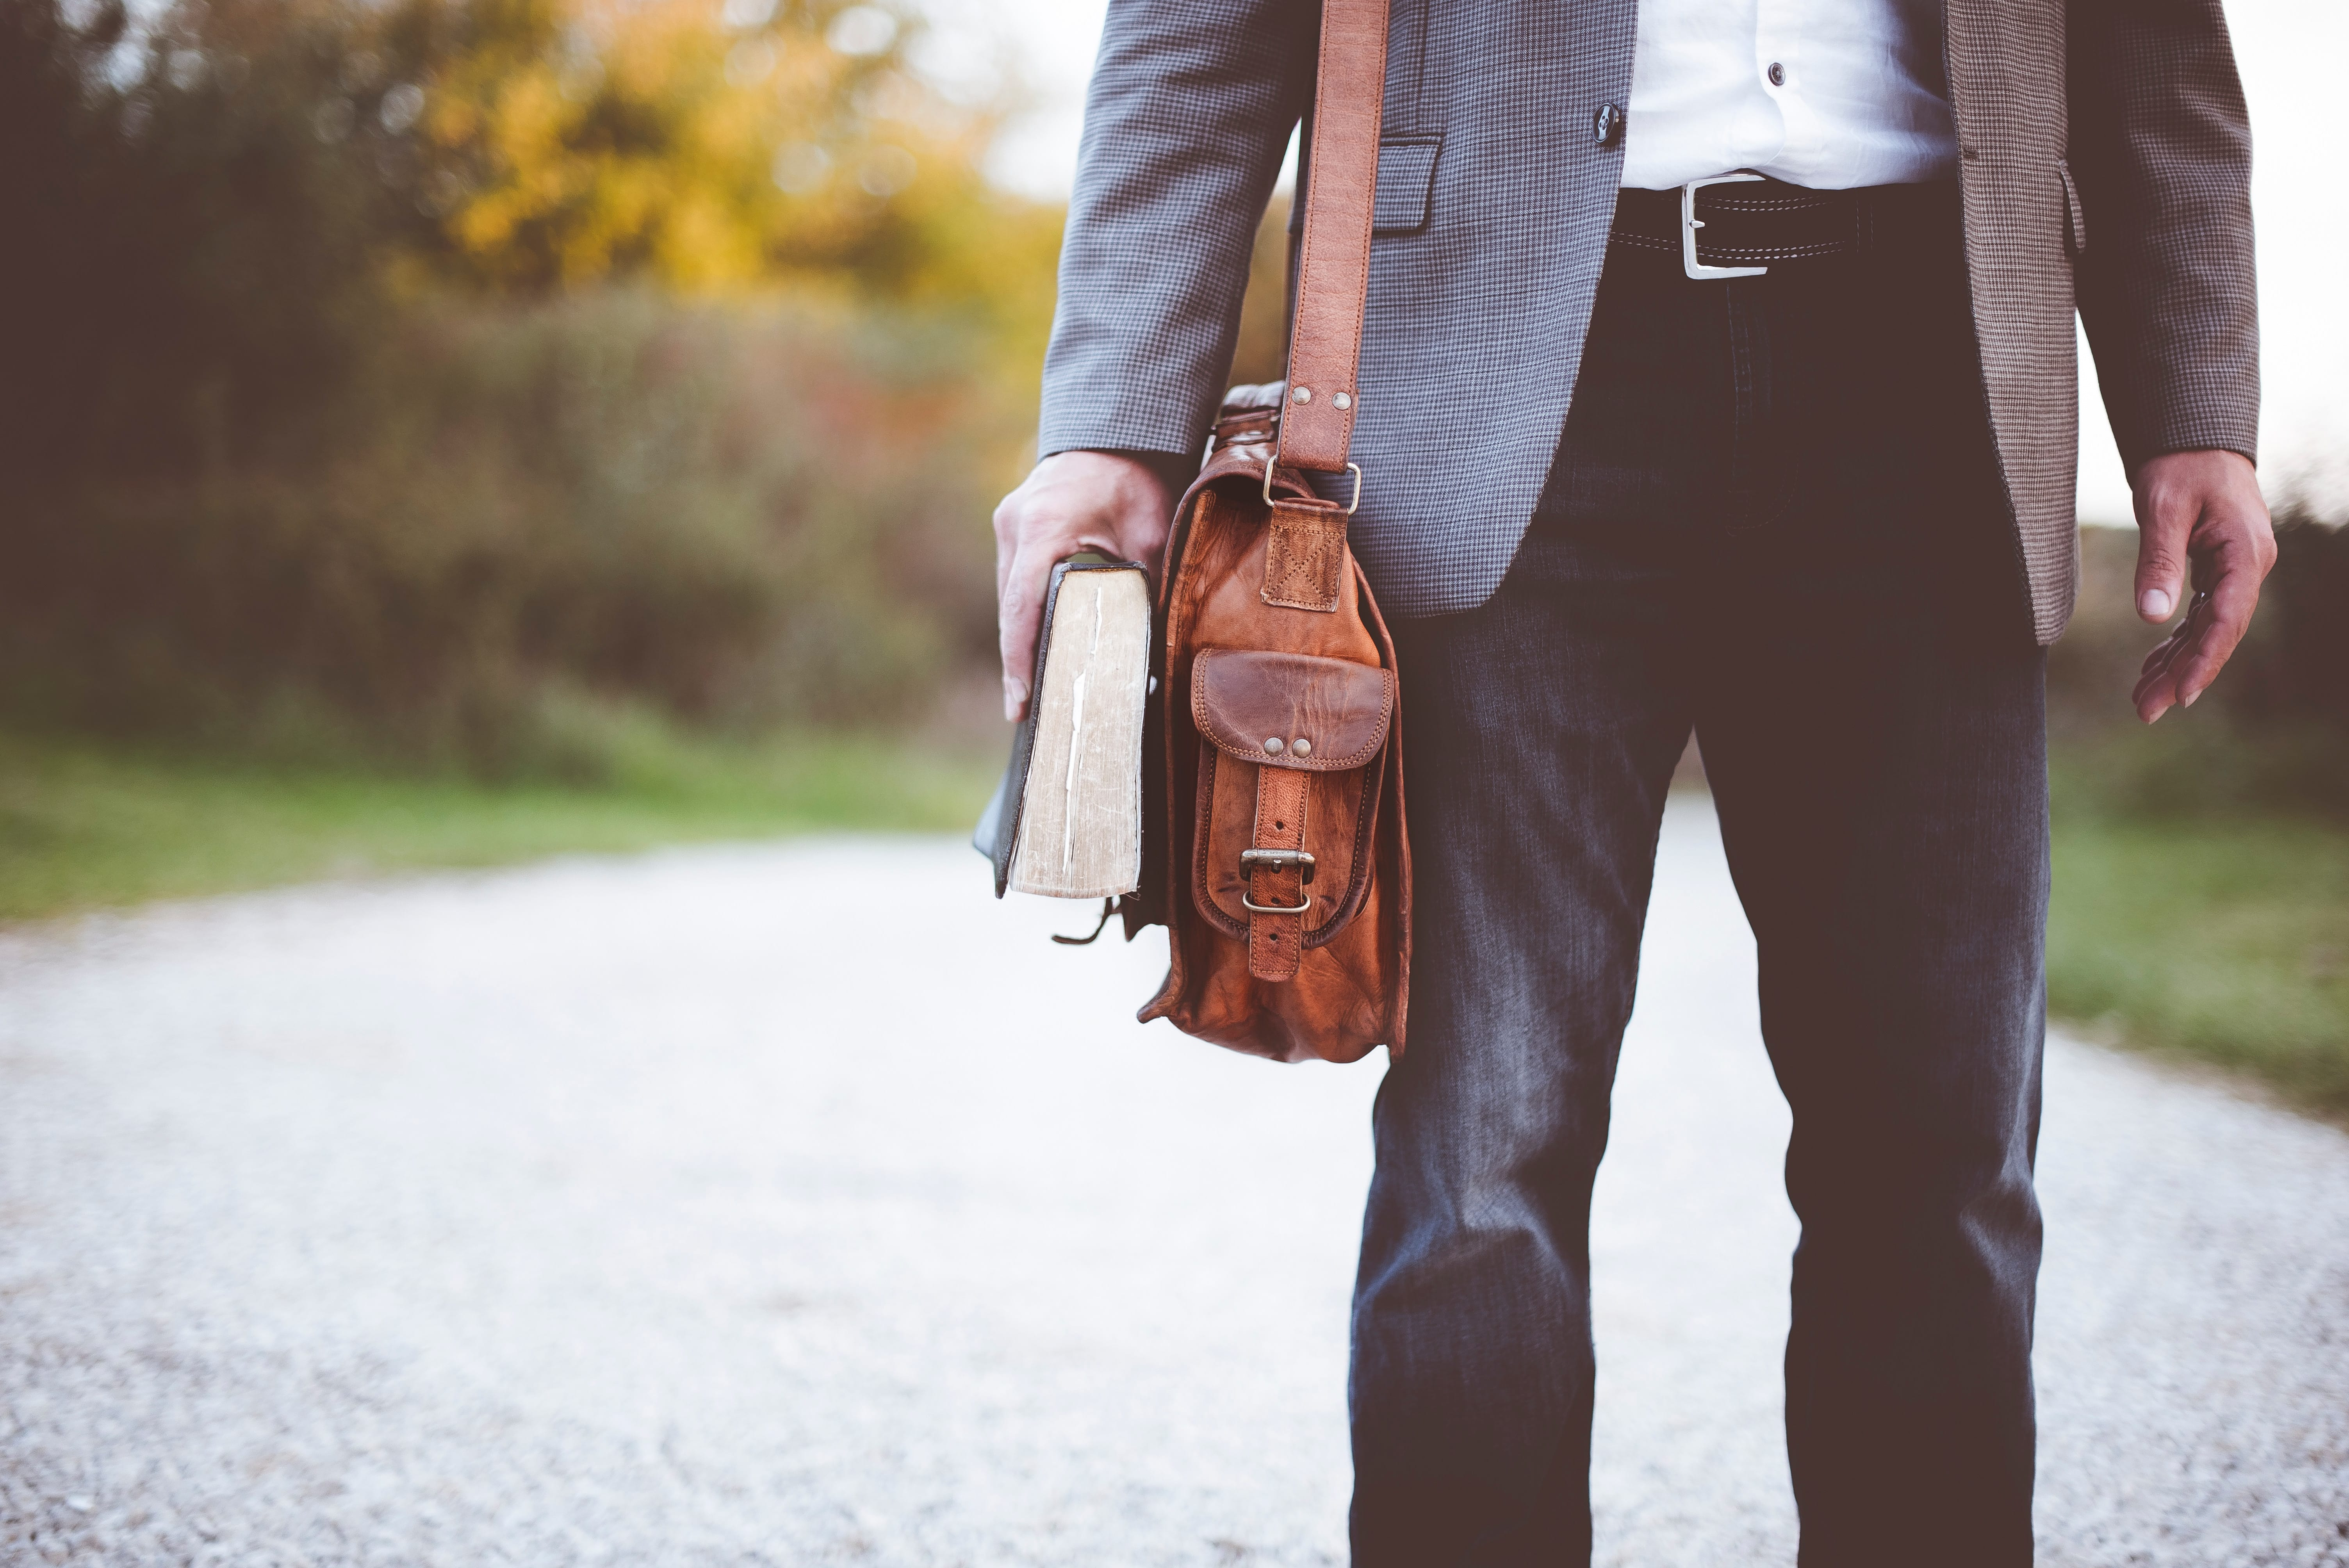 Man with attache and book walking down the road; image by Ben White, via Unsplash.com.